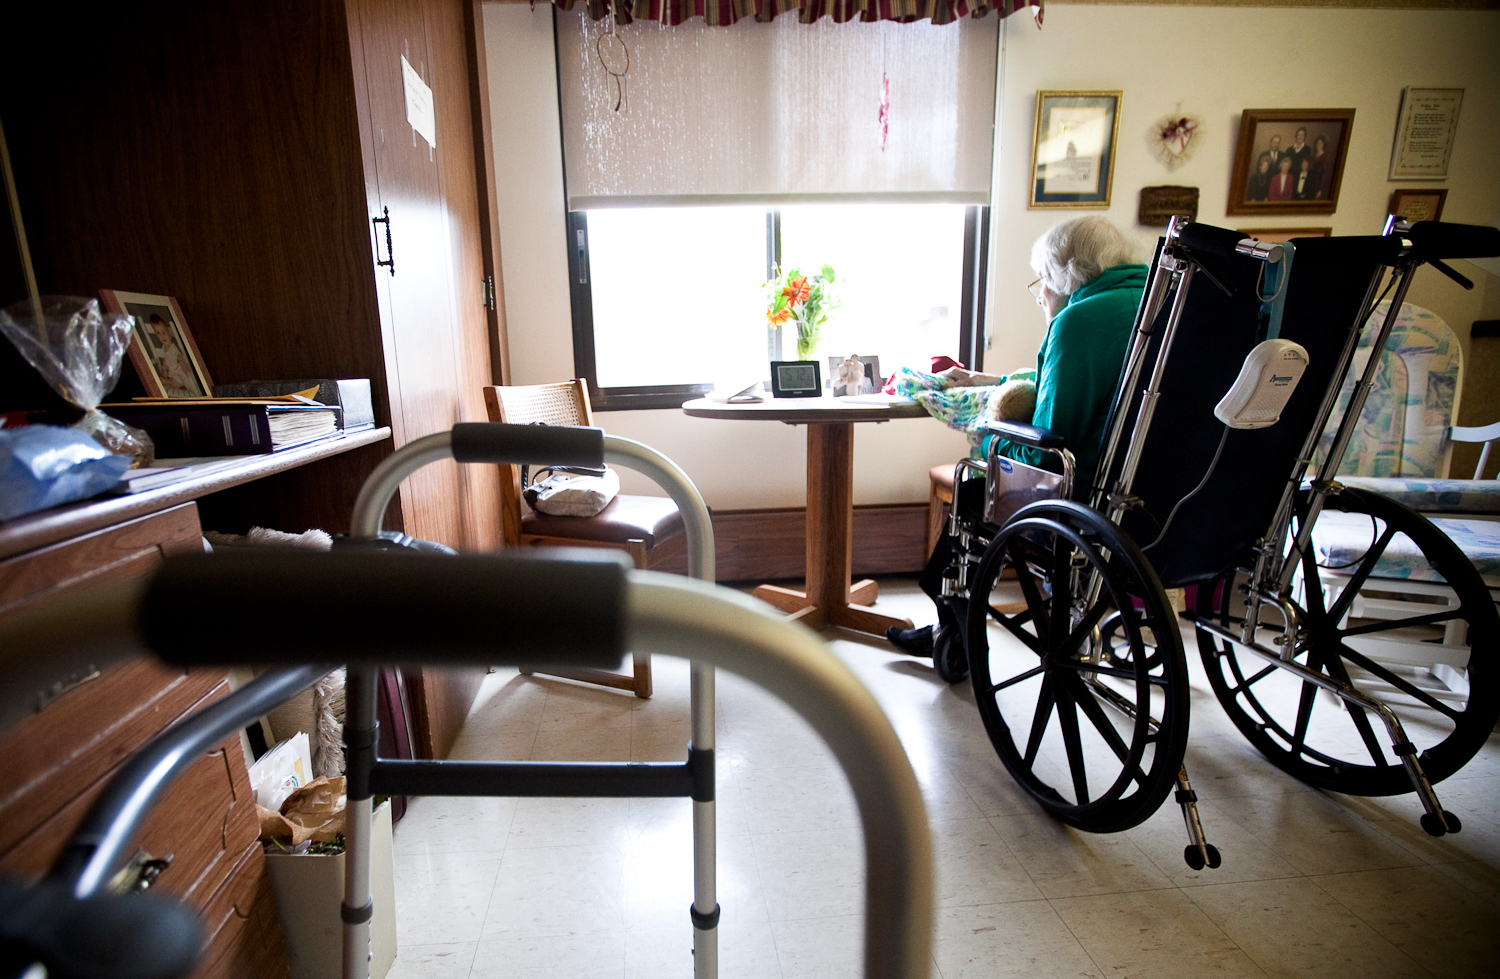 Medicare Nursing Home Suffolk County Ratings